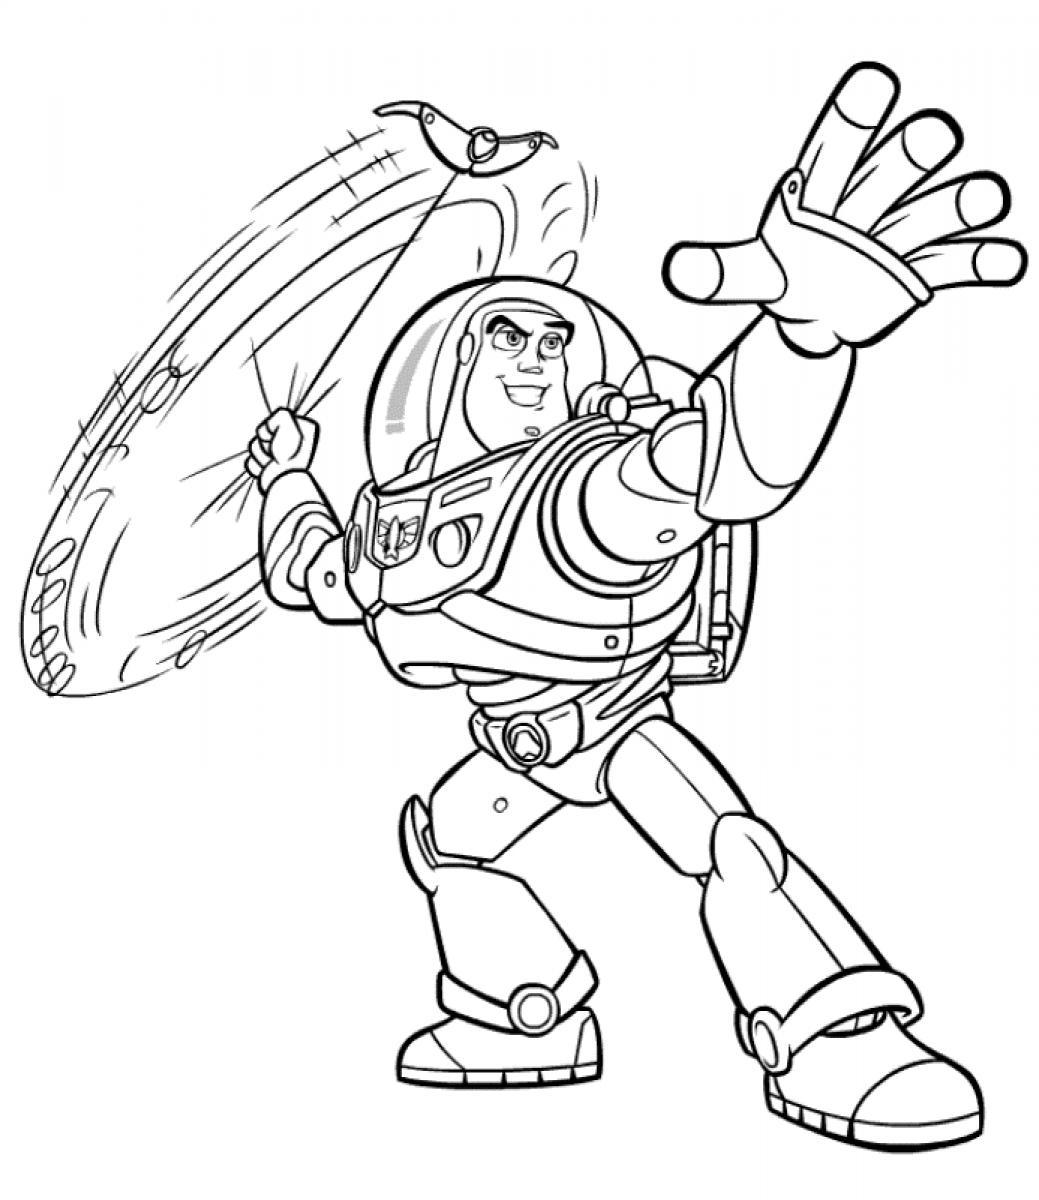 Buzz and zurg coloring pages download